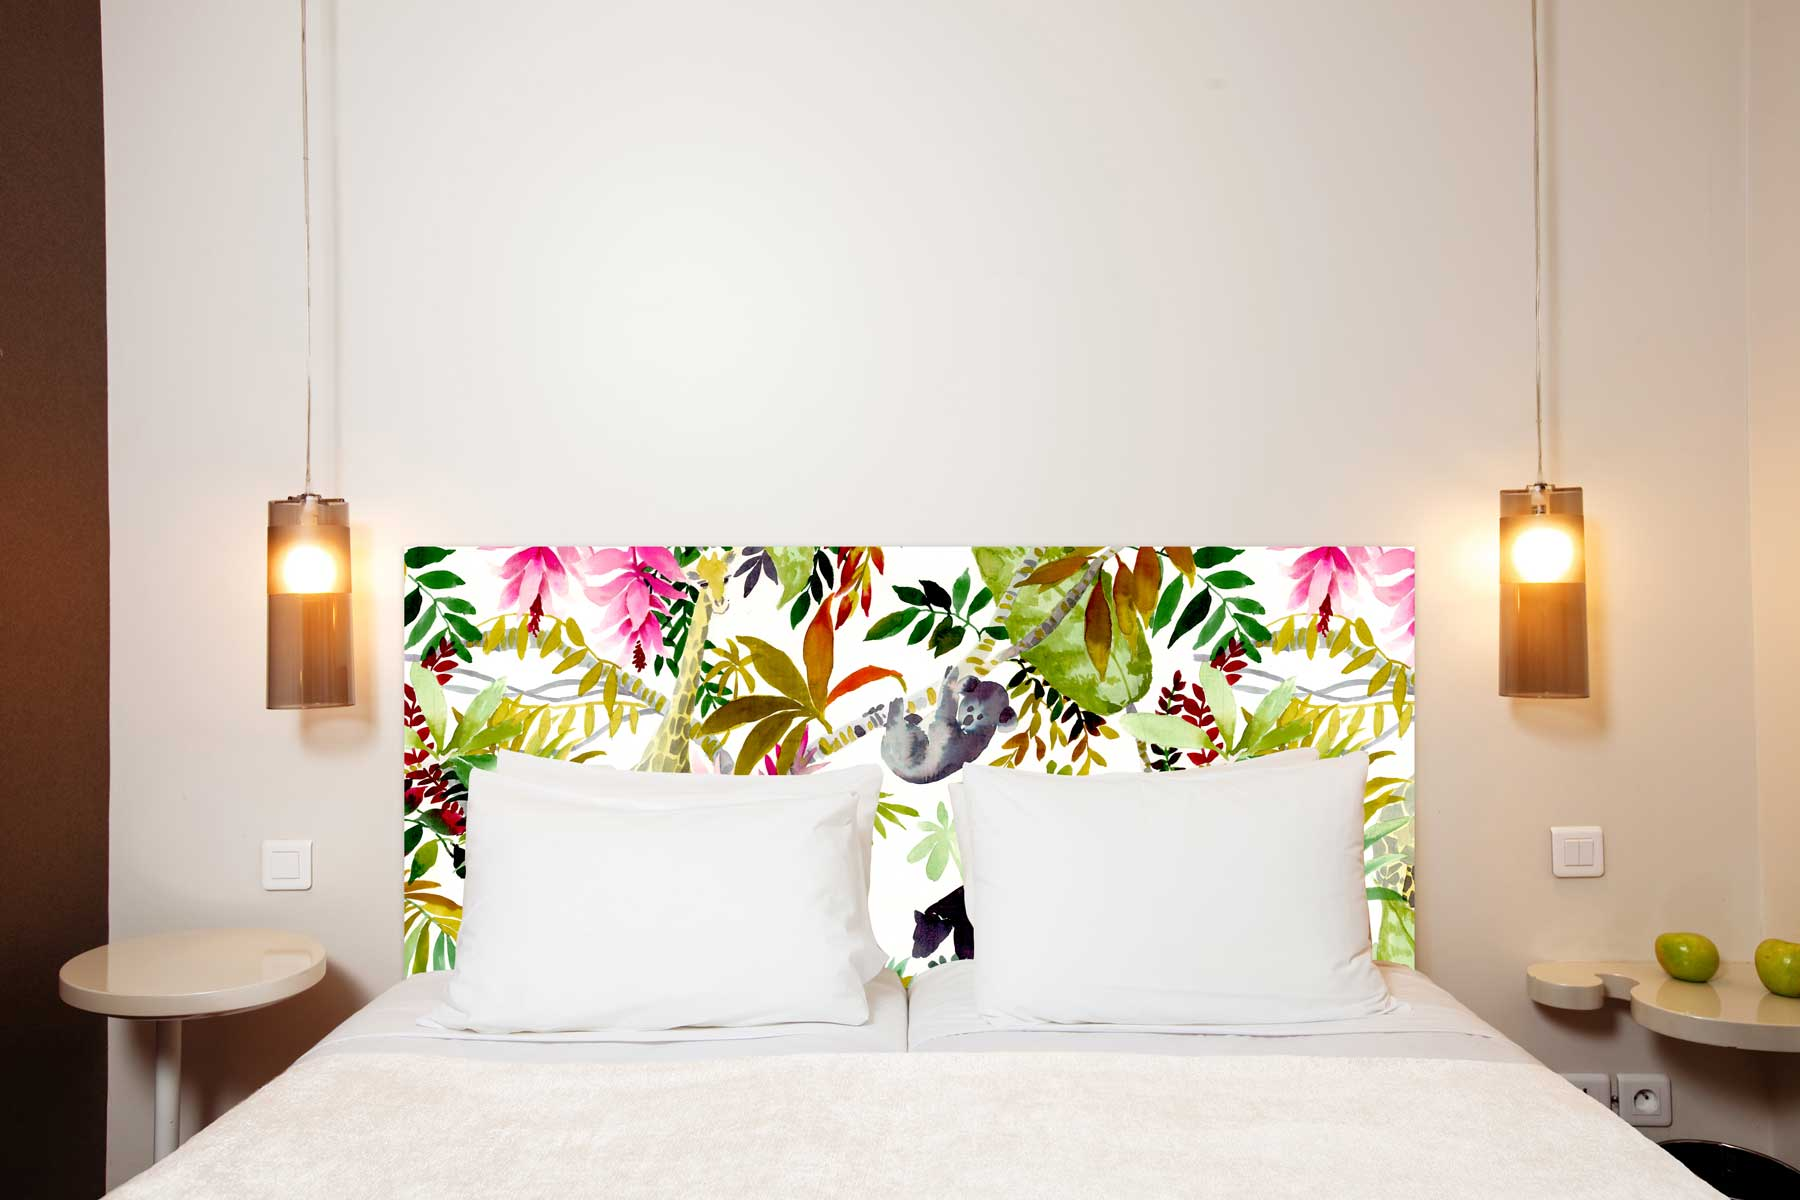 Tete de lit Jungle 160*70 cm